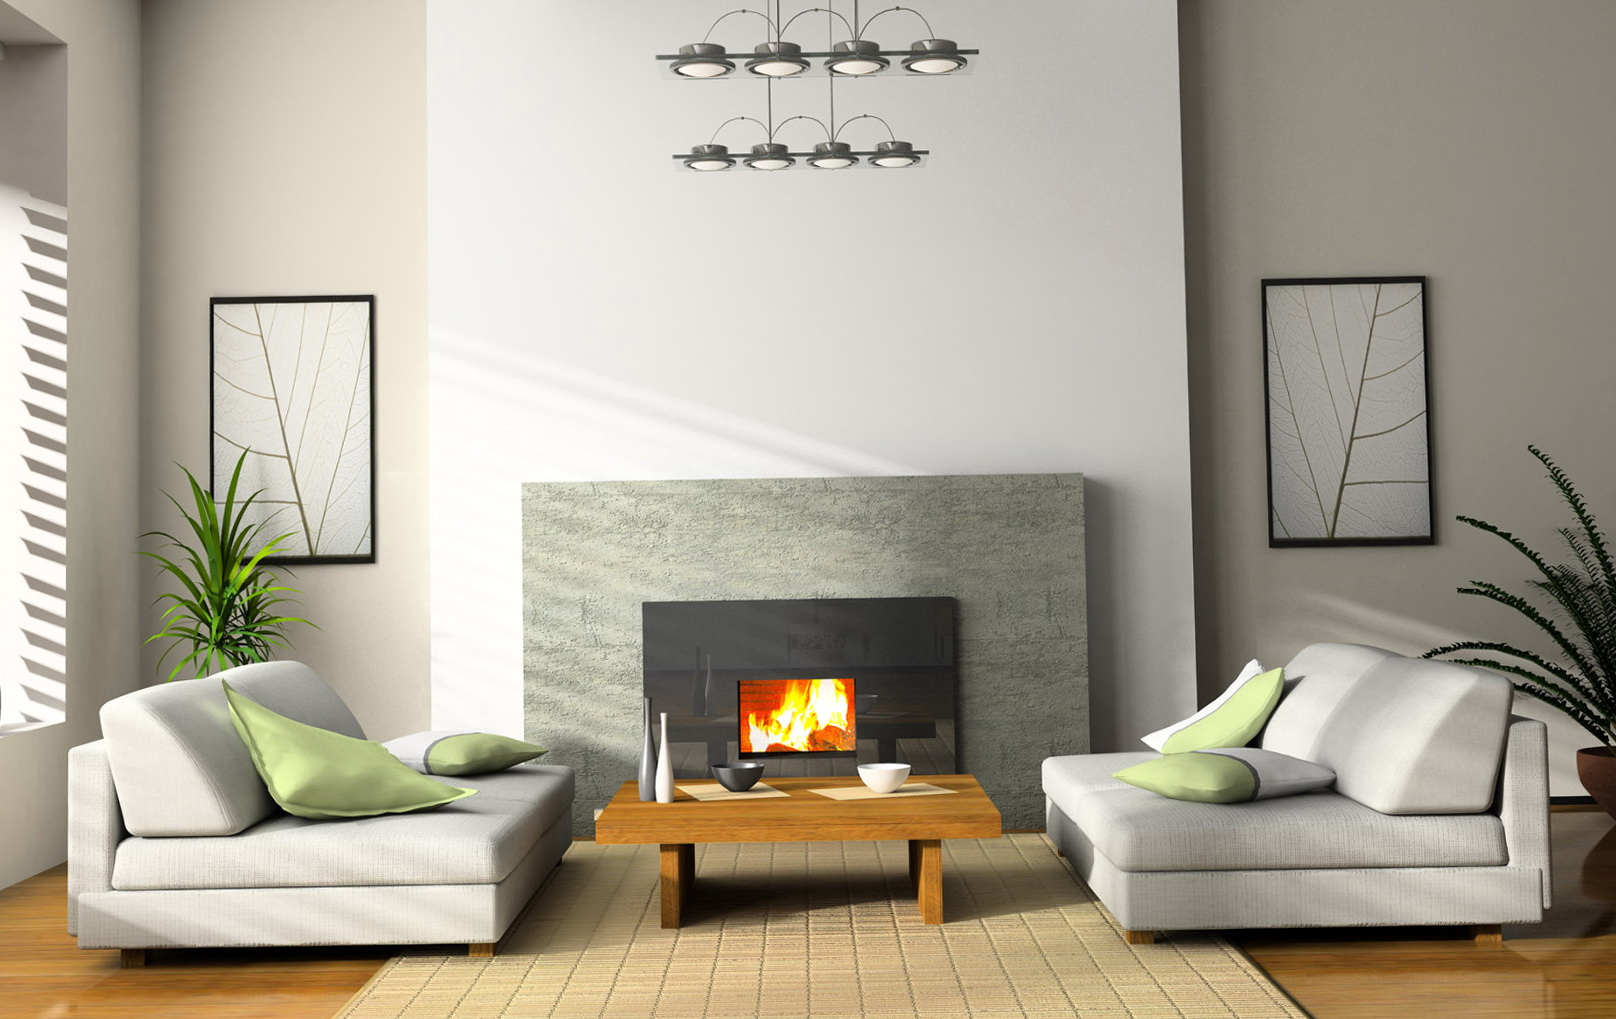 The Fireplace Store Mcknight Road Home Design Ideas